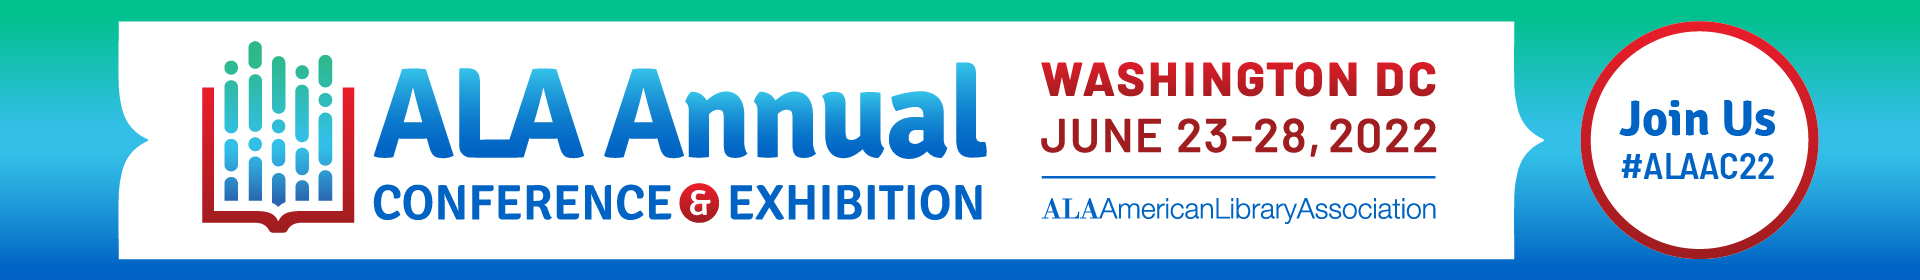 ALA Annual Conference & Exhibition | June 22-28, 2022 | Chicago | #alaac22